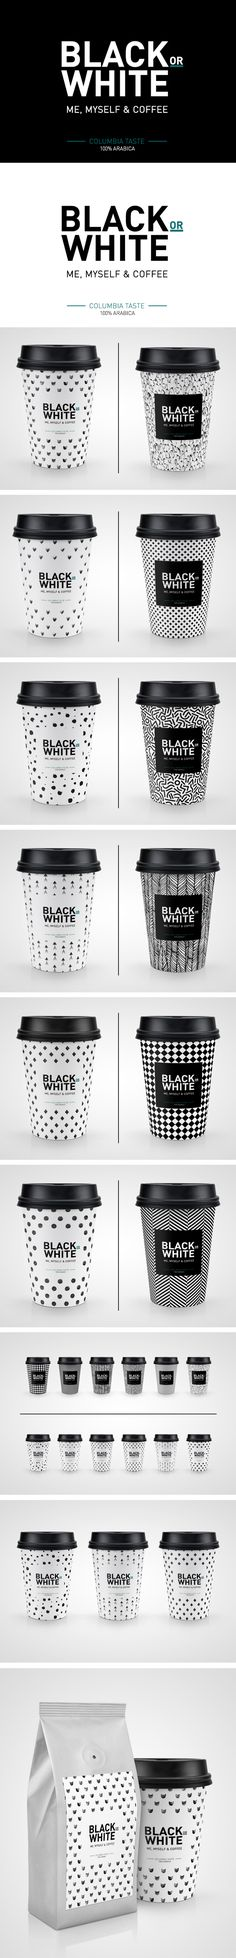 Black or White Coffee Mock-up on Behance PD